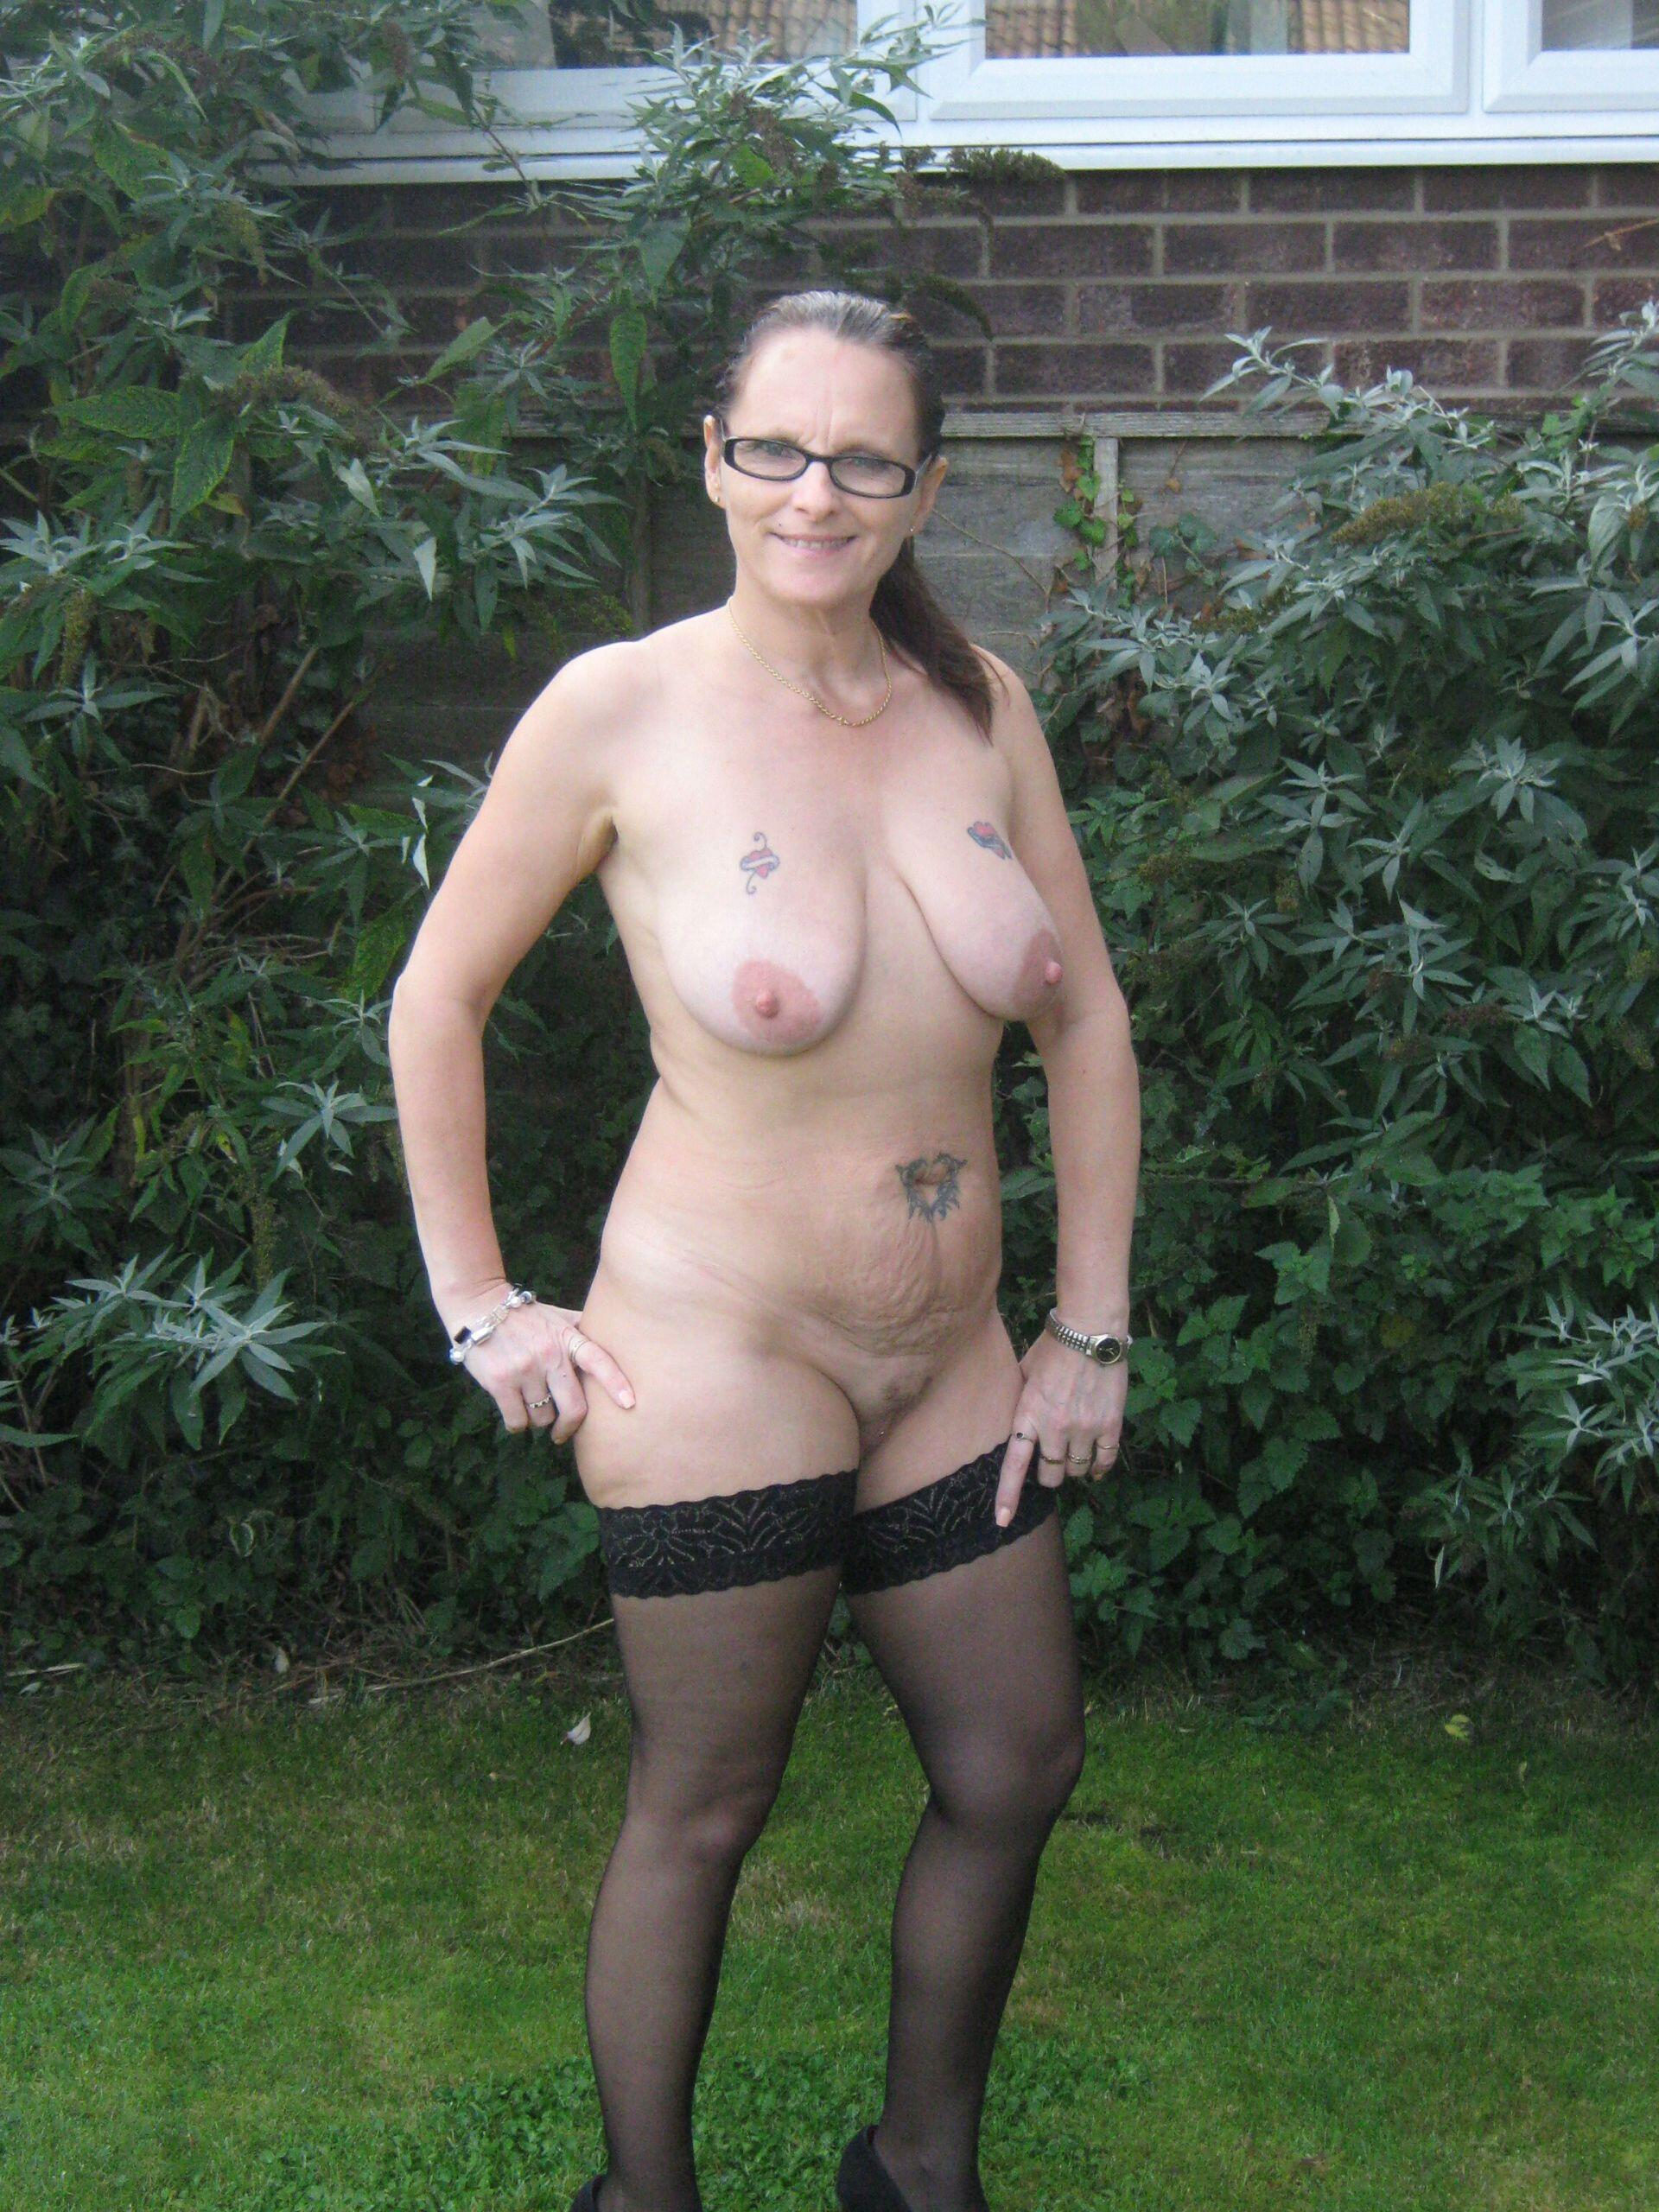 Nude Mature slut showing off in the garden real nudity public nudity no panties mature howife